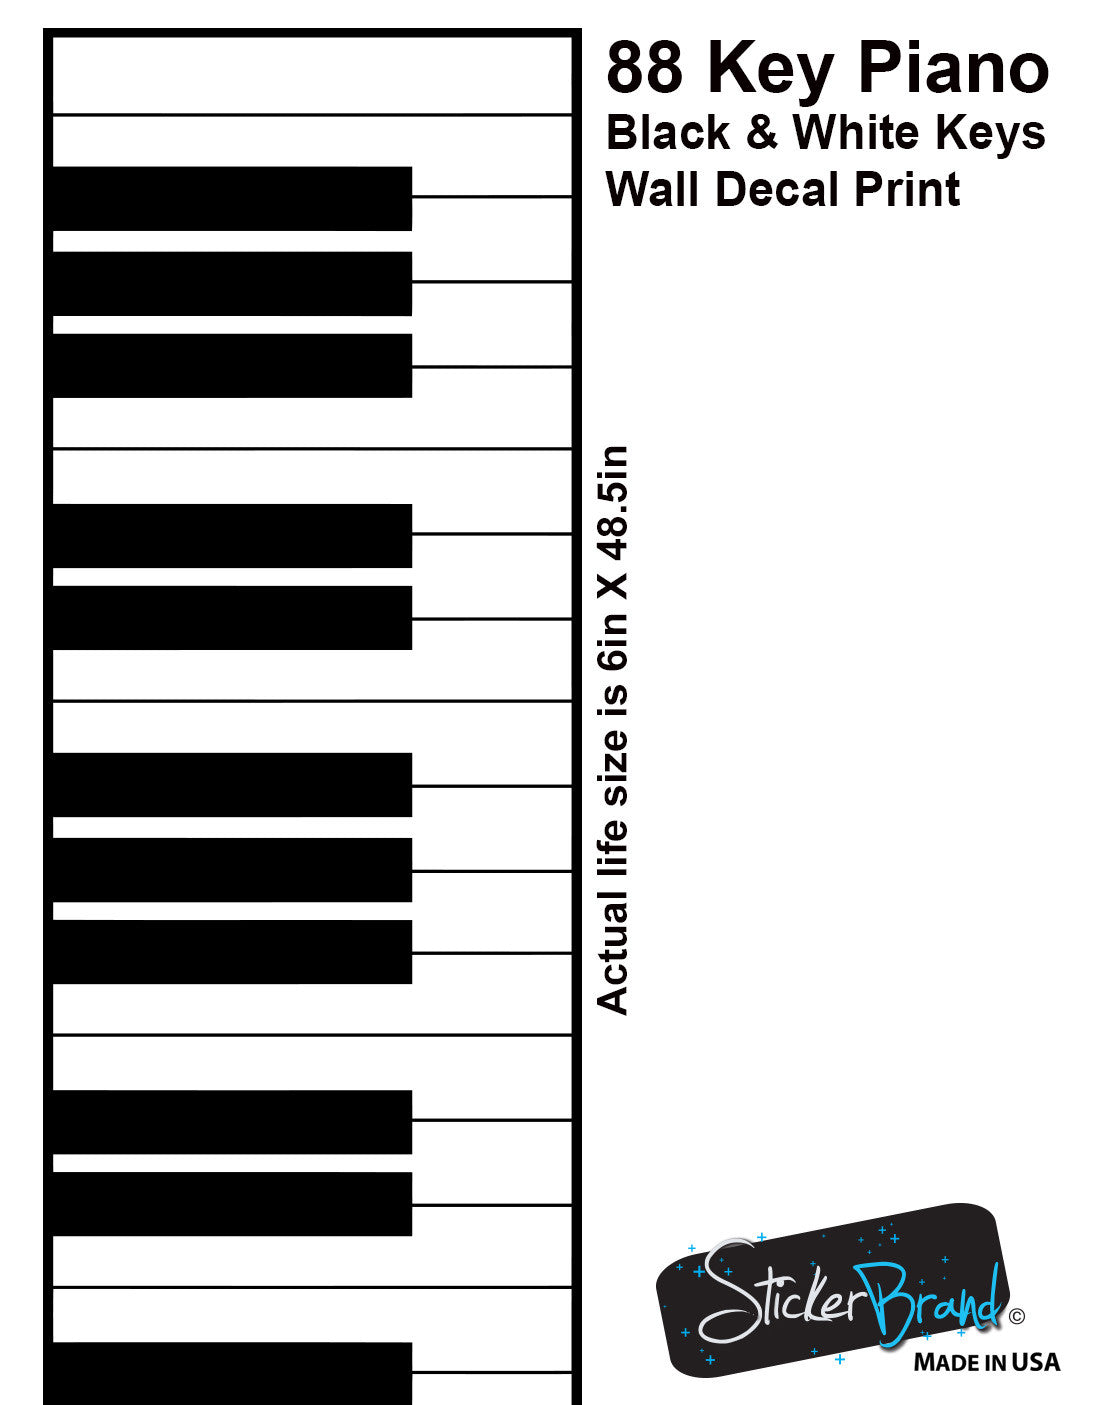 Piano Keys (88 keys) Black & White Graphic Wall Decal